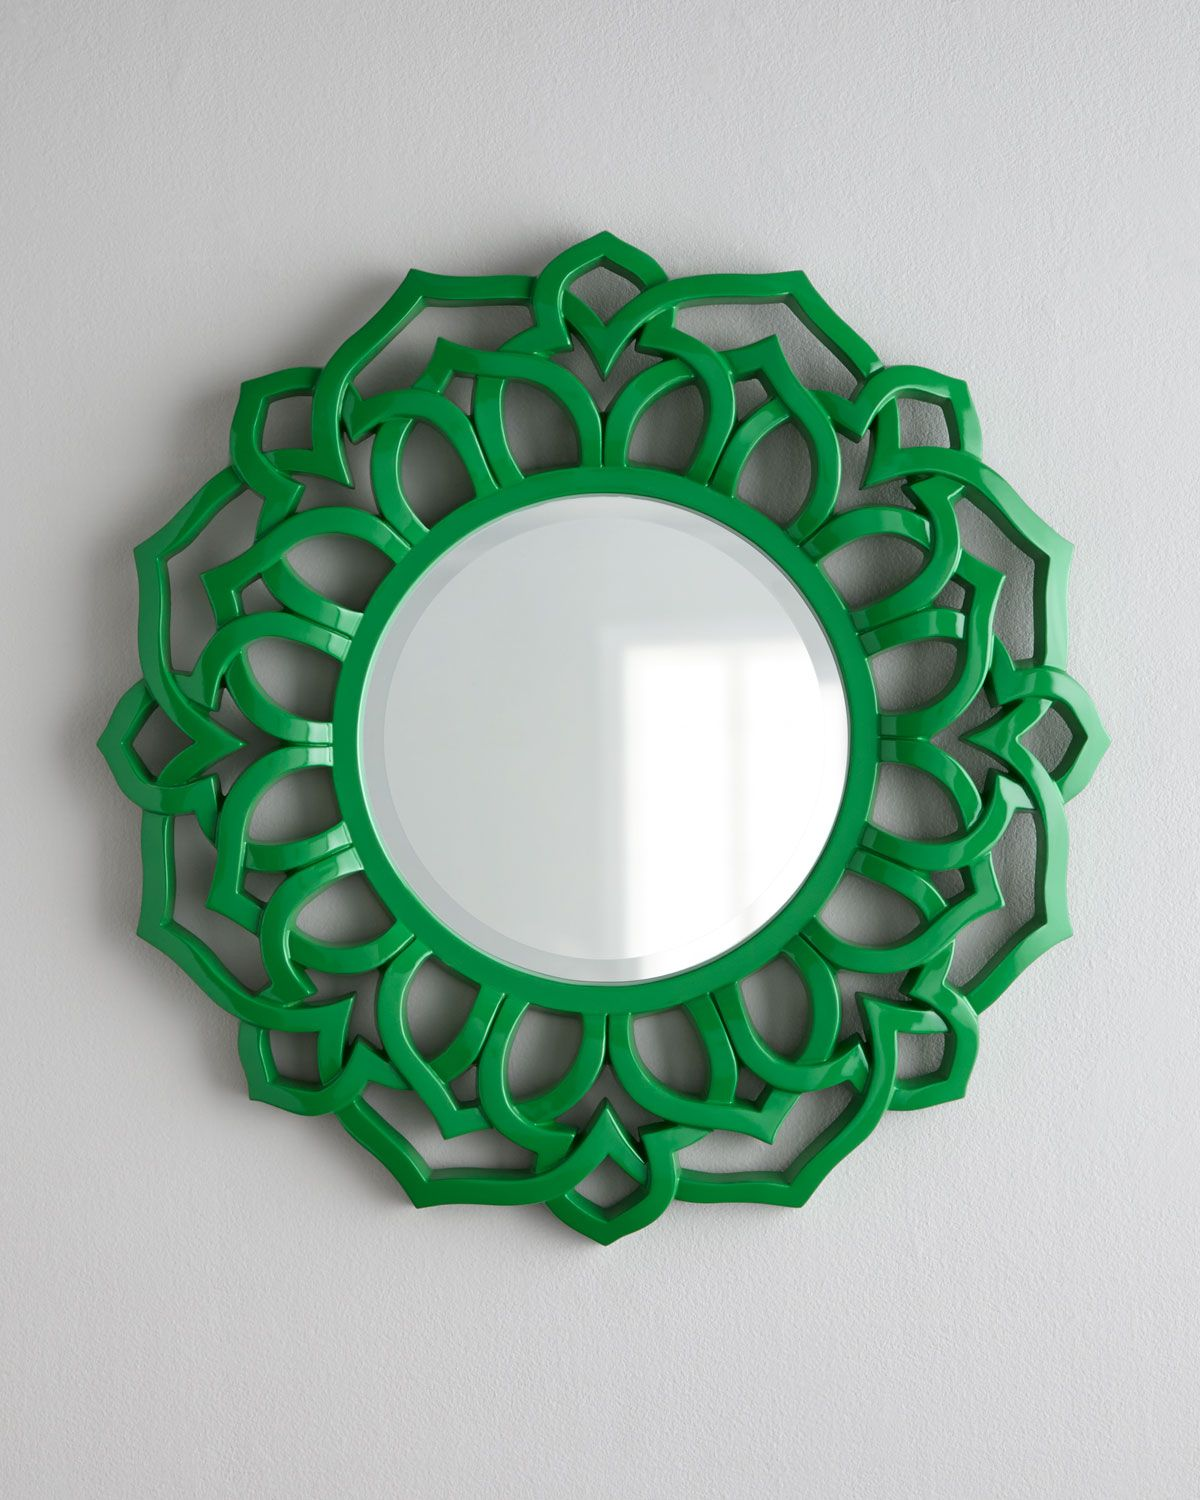 Green Chinois Mirror.  What a find! A trendy mirror in the hottest new color in a flower-shaped frame inspired by chinoiserie. (horchow.com)